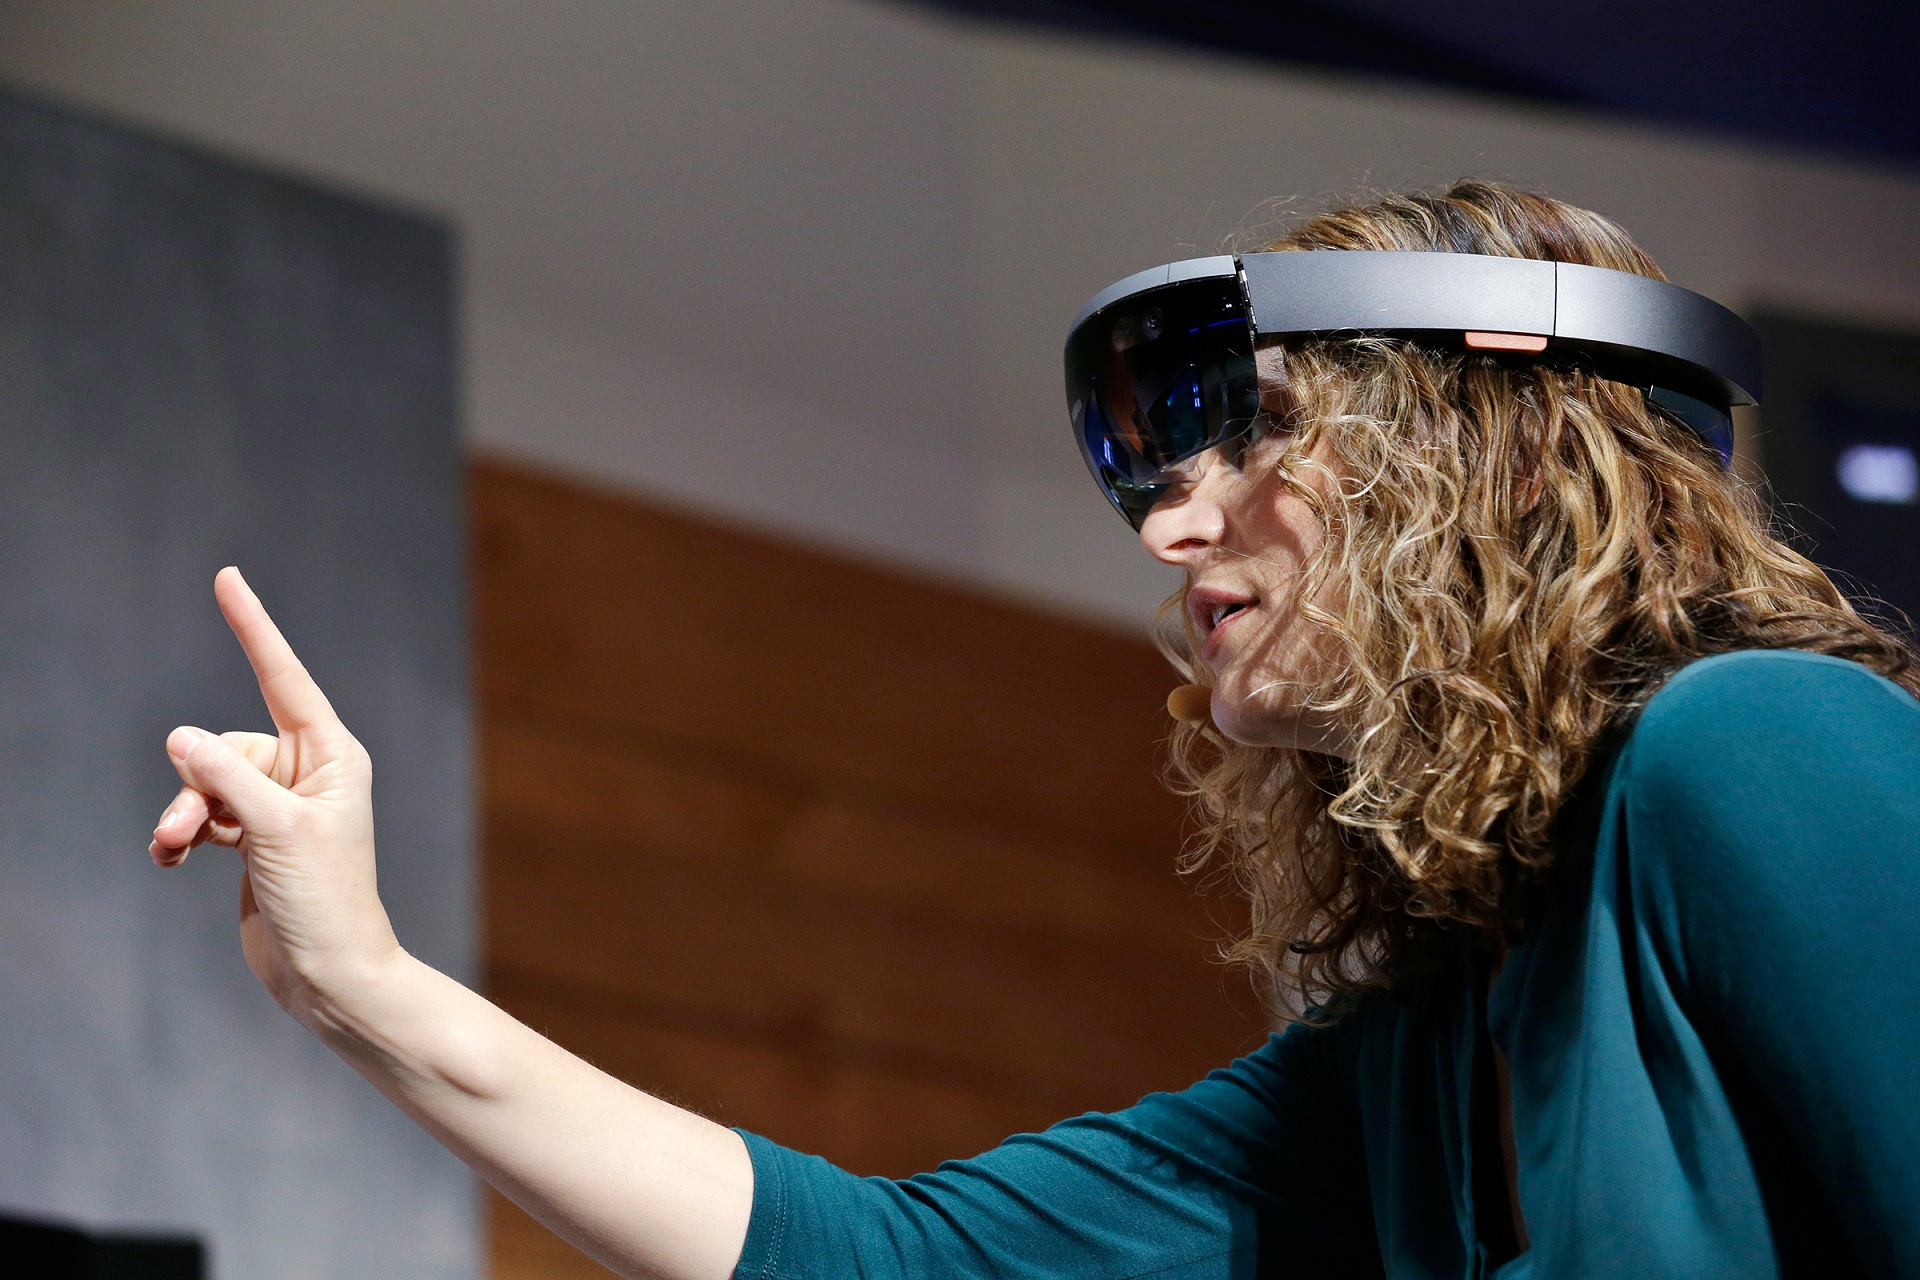 Microsoft Hololens: Is It the Future of Computing?